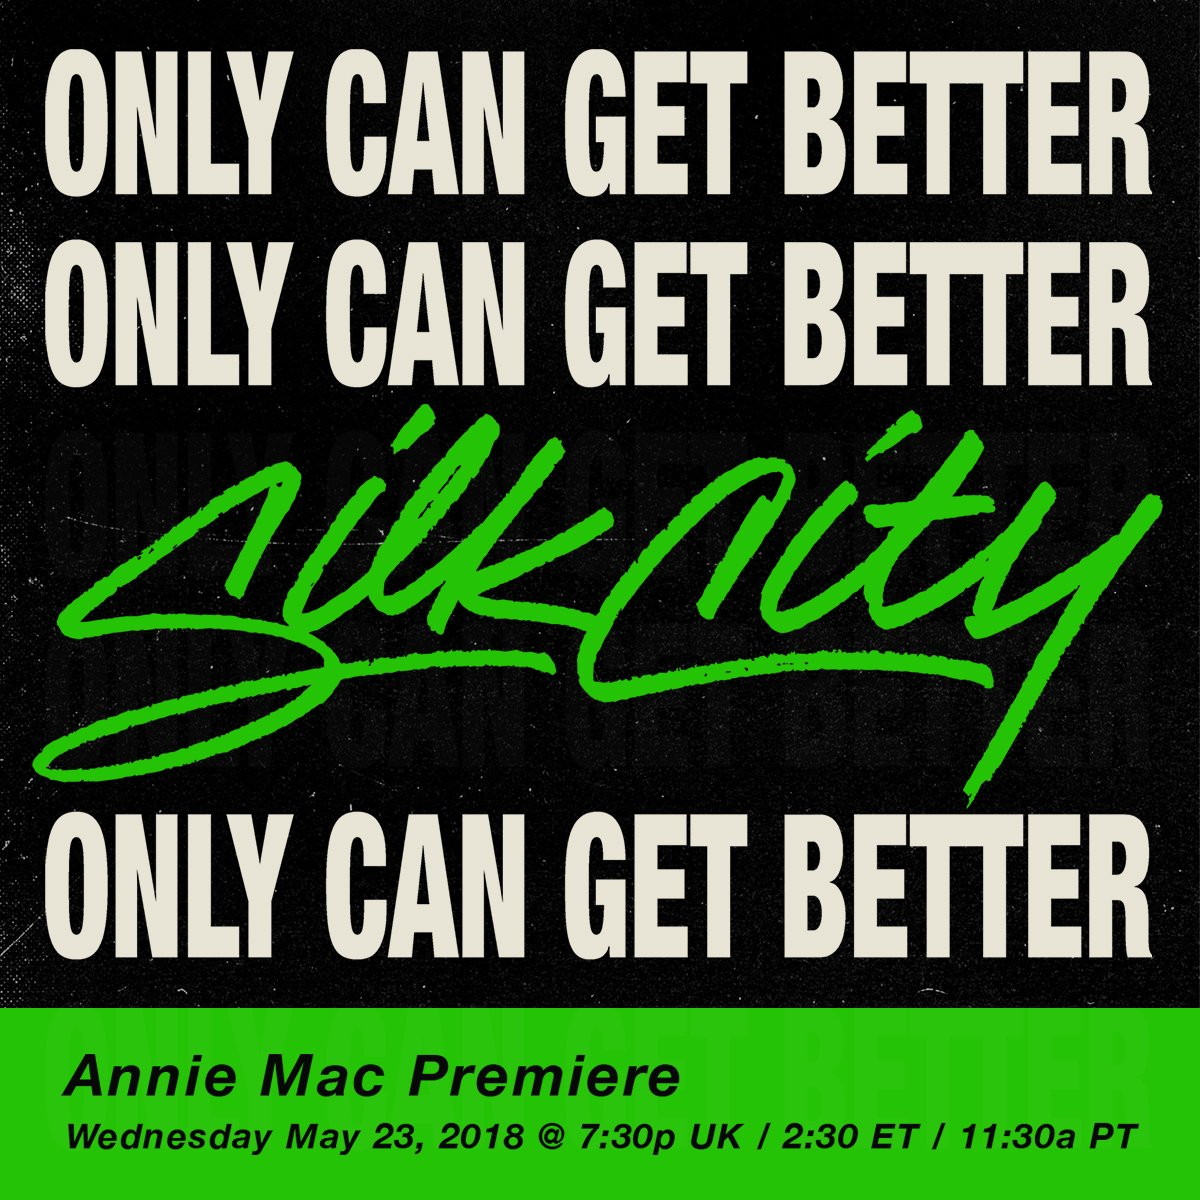 coming in 1 hour @anniemac @bbcr1 @markronson #silkcity https://t.co/gIAza9q0di